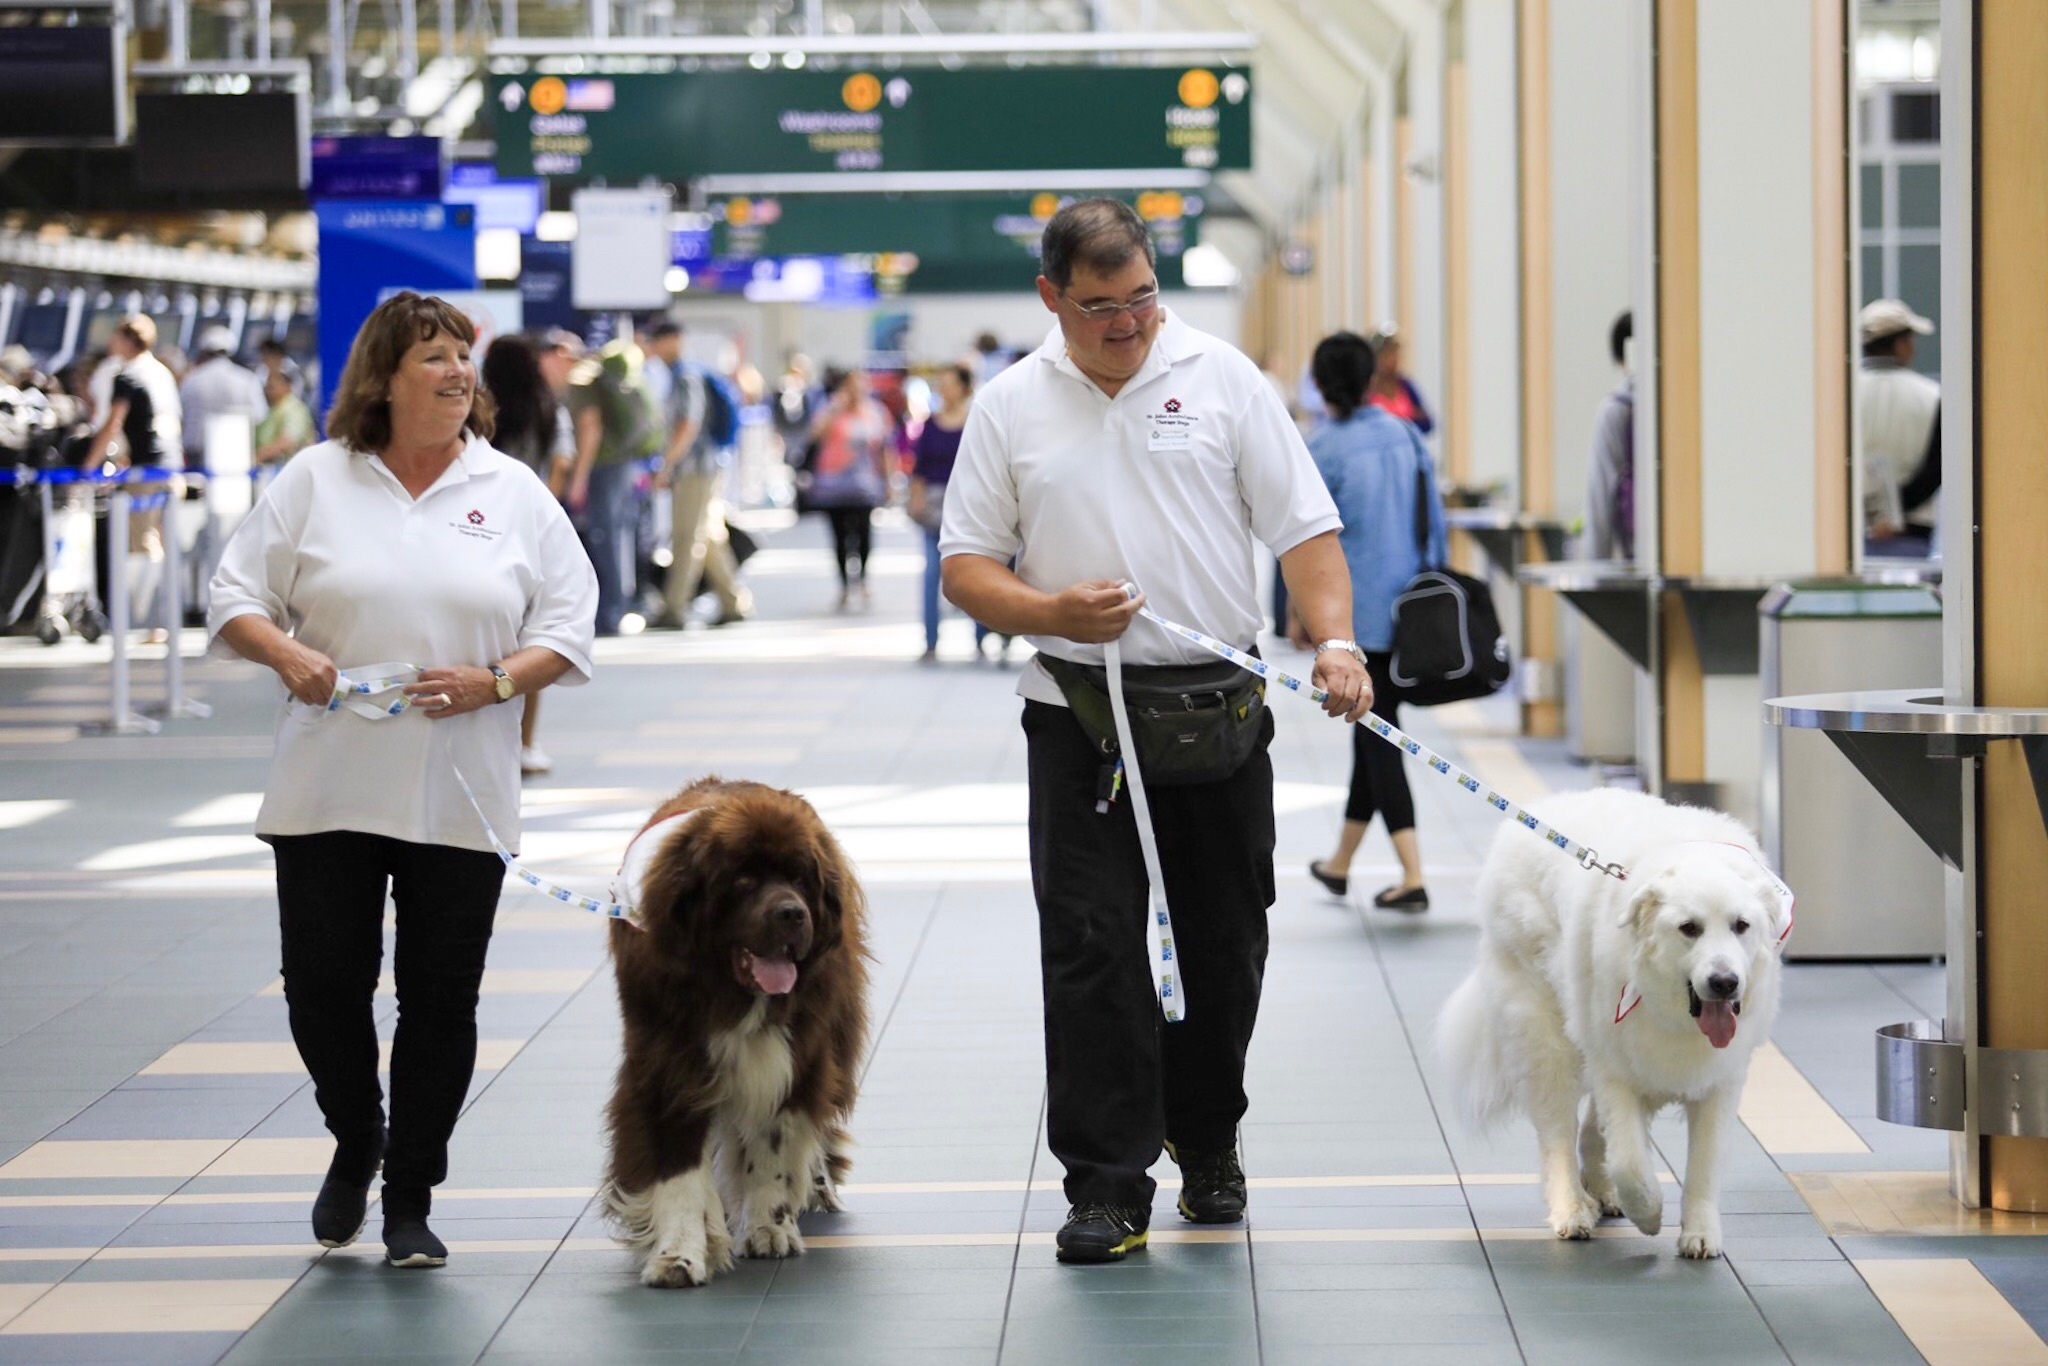 St John Ambulance handlers lead YVR Ambassador Dogs in the terminal